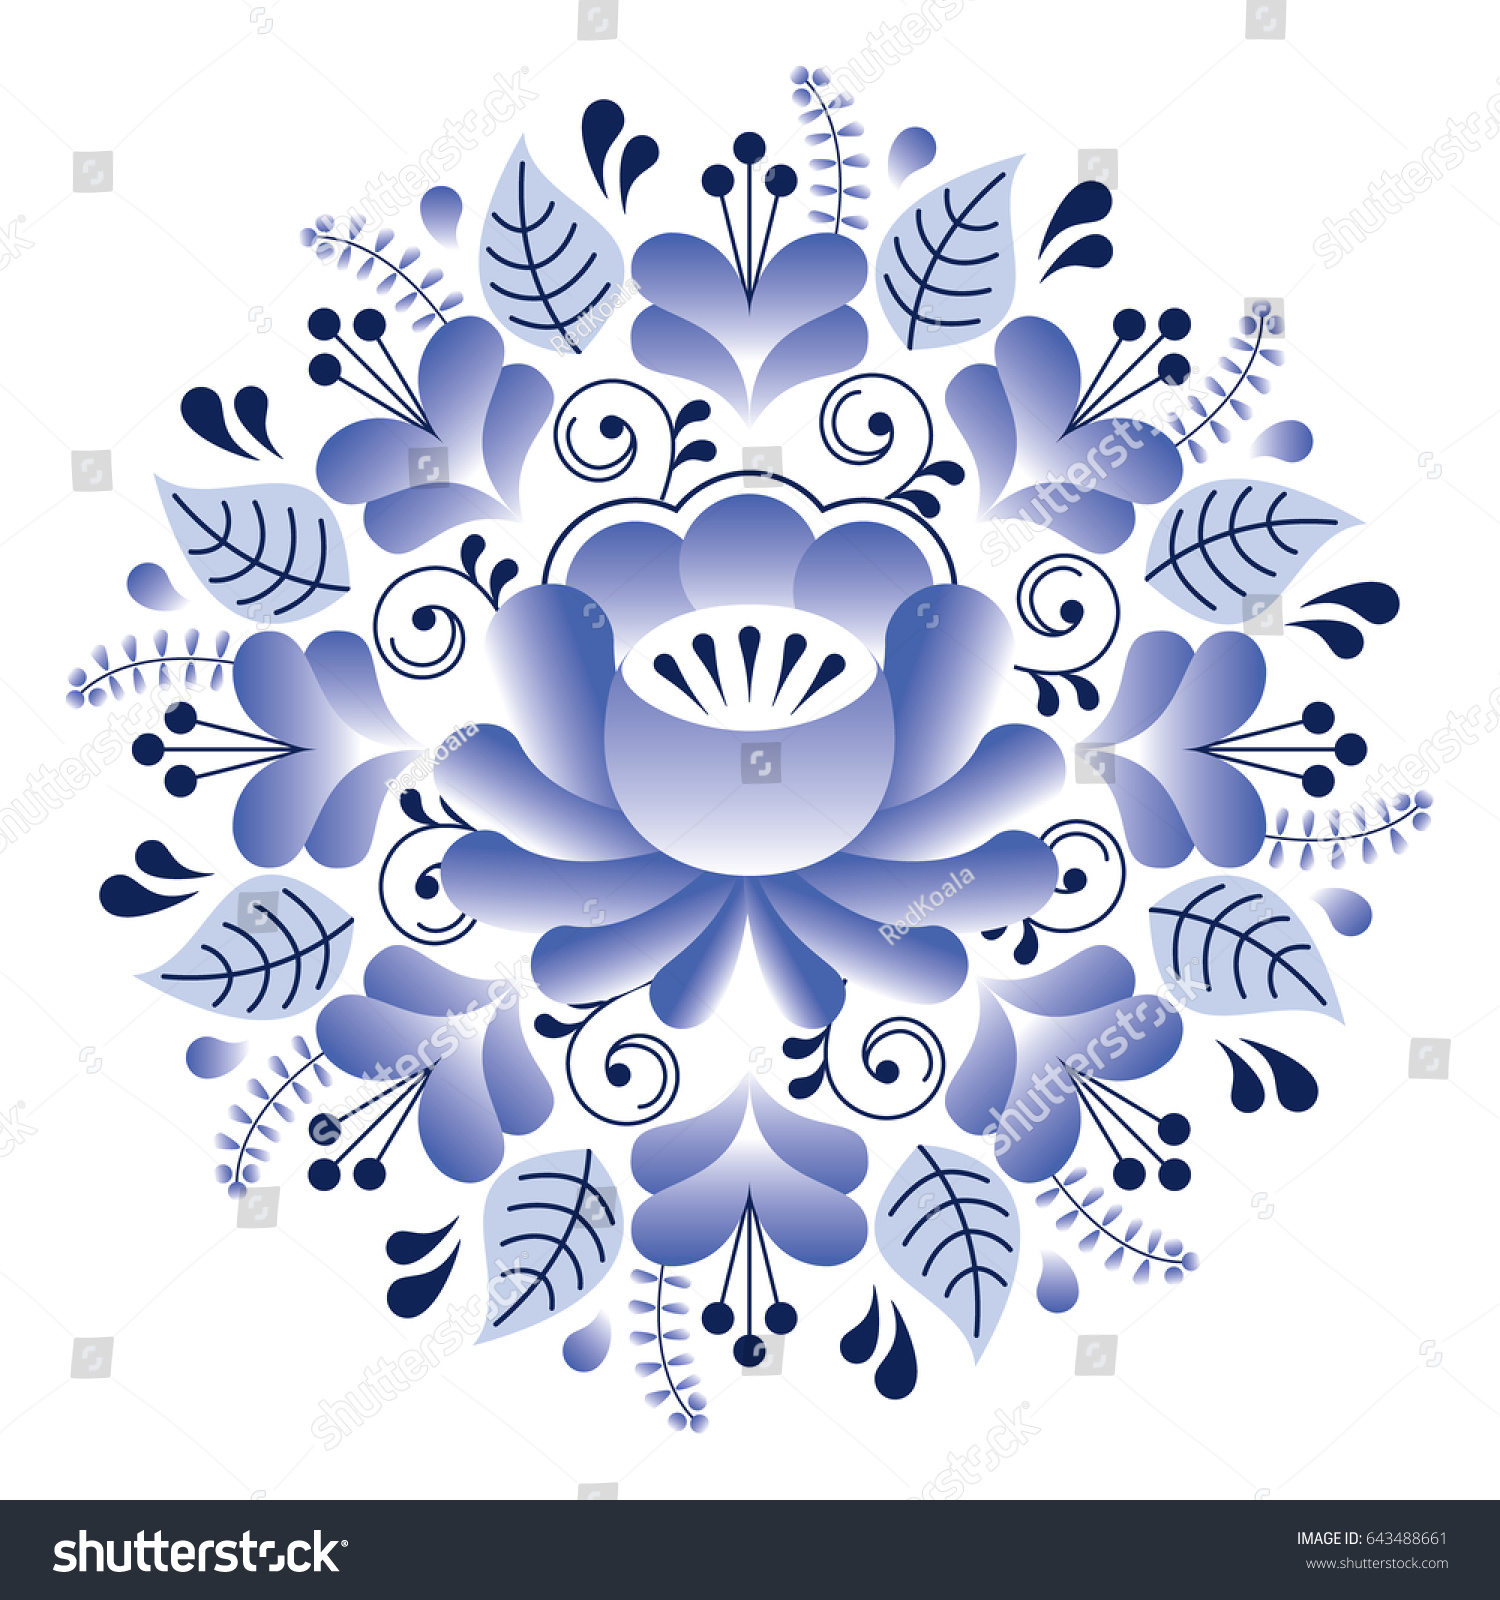 Artistic floral element abstract gzhel folk art blue flowers stock - Folk Art Floral Pattern Russian Design Inspired By Gzhel Ceramics Style